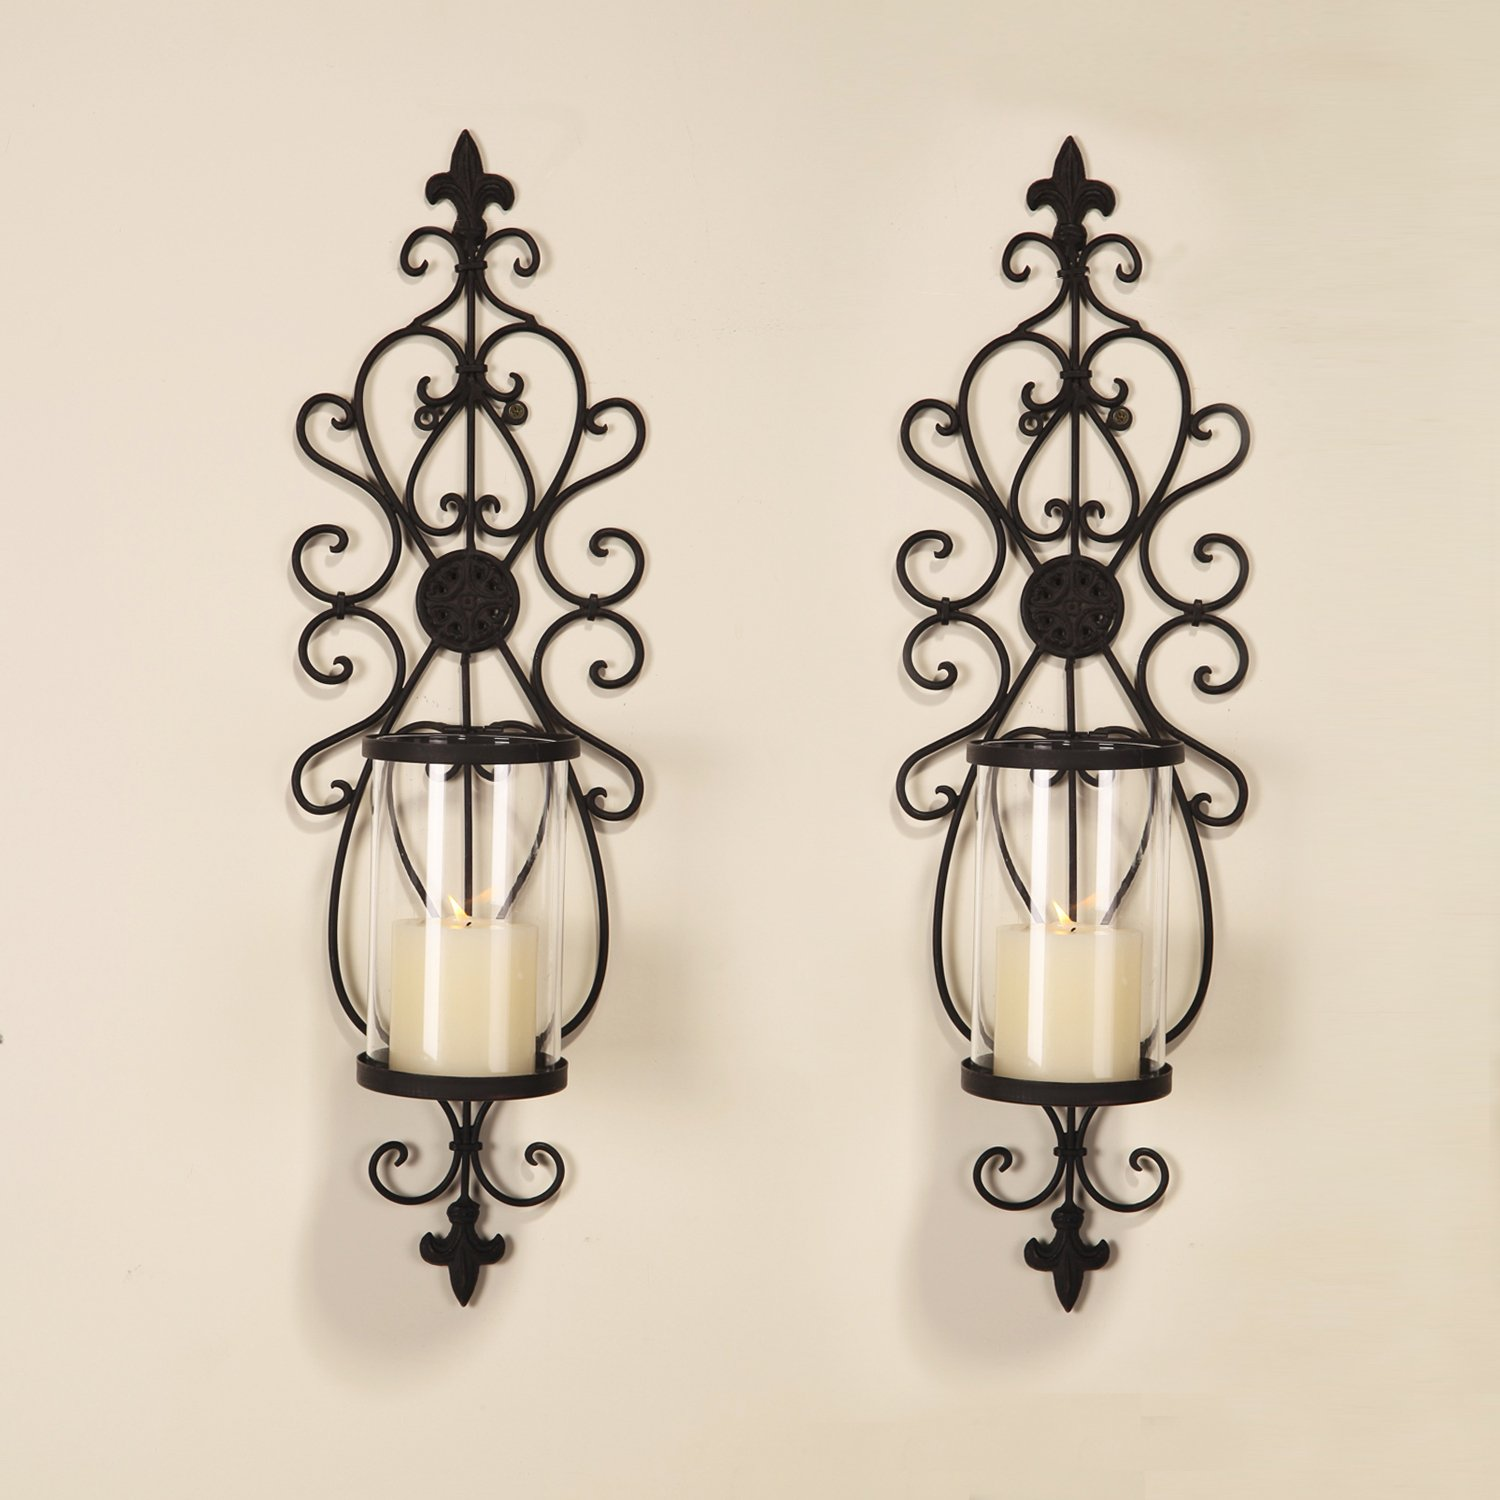 Joveco Decorative Wall Mount Candle Sconces Holders Set of 2 Antique JHD03